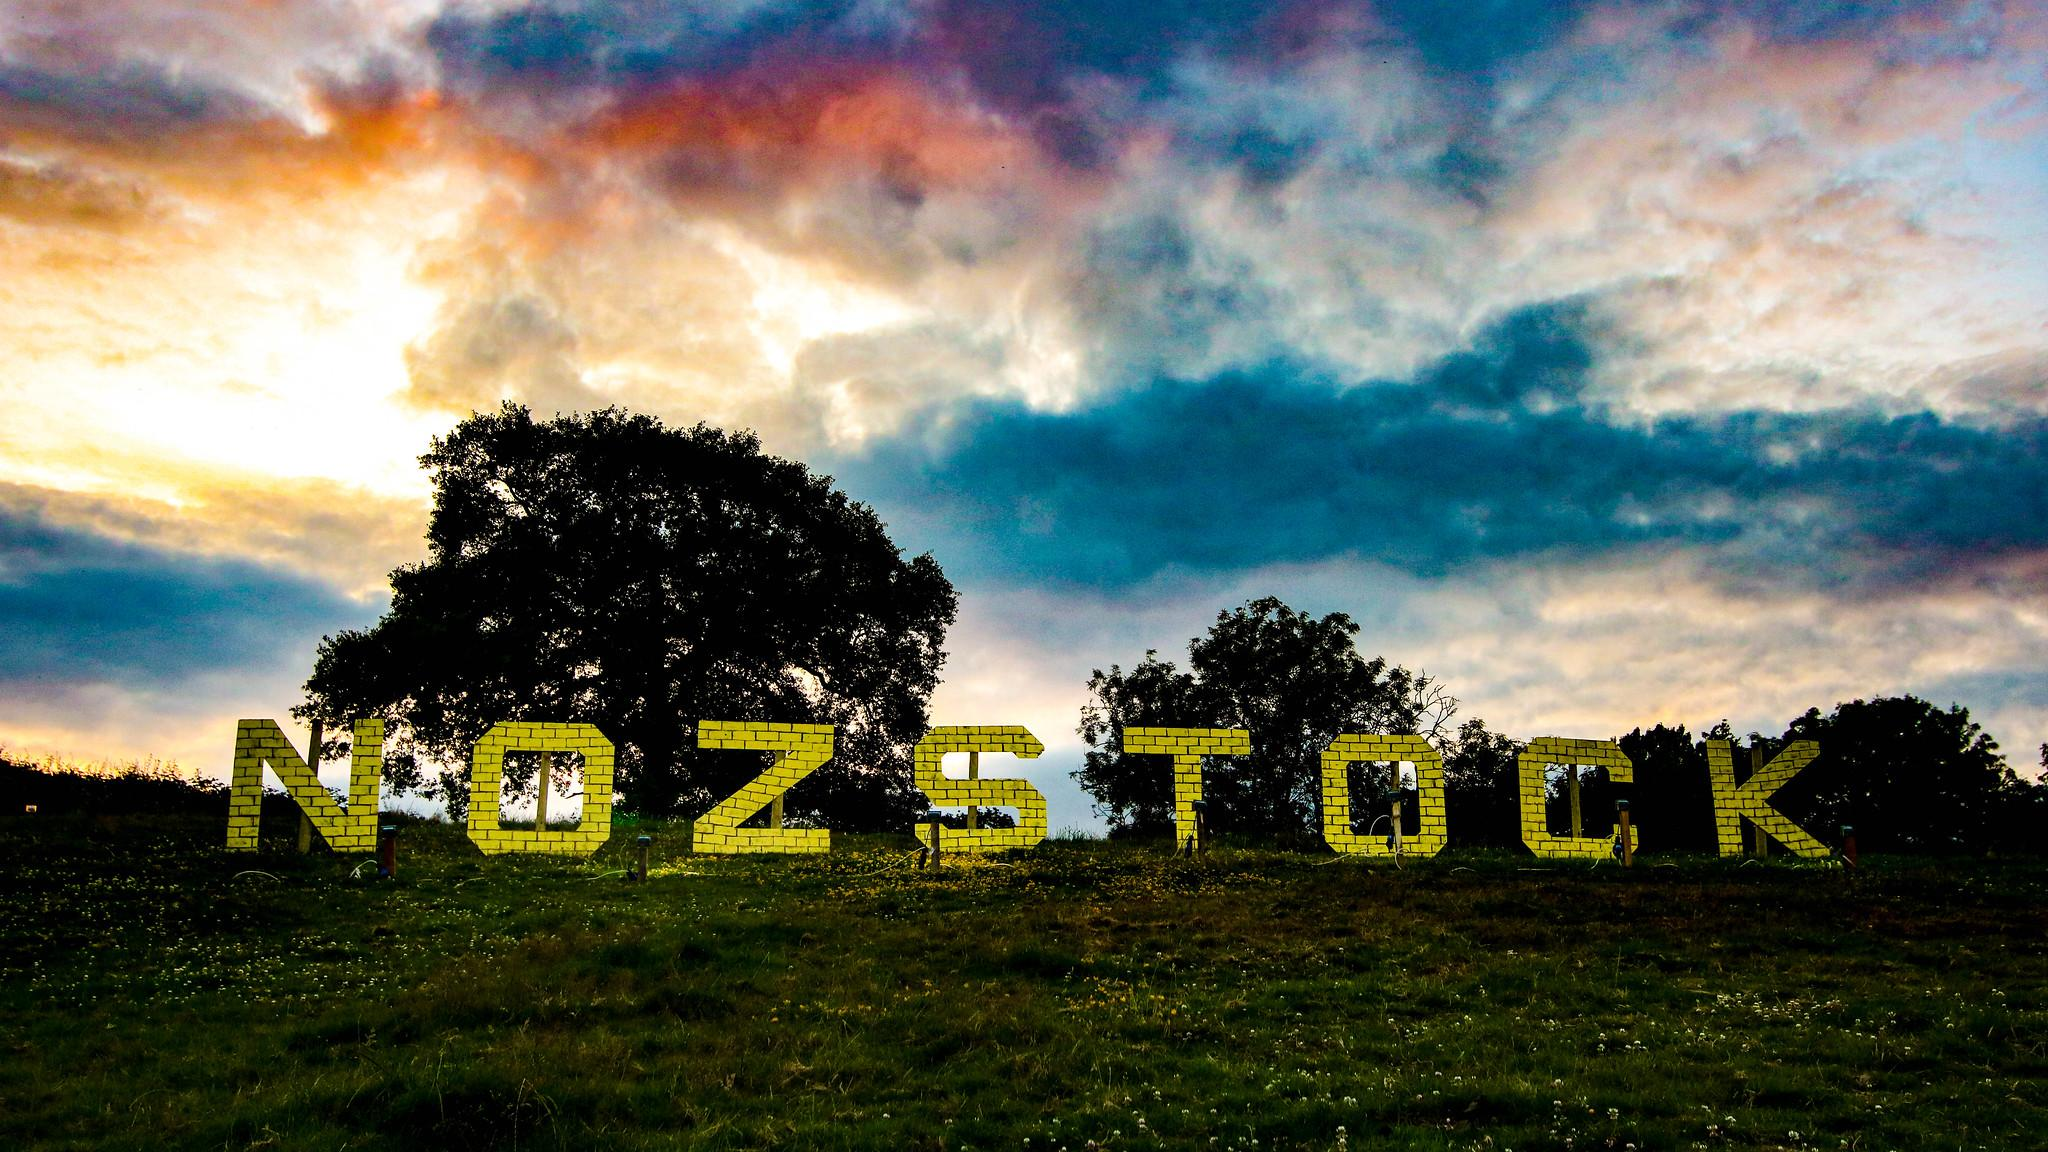 Yellow brick Nozstock sign against trees and sunset